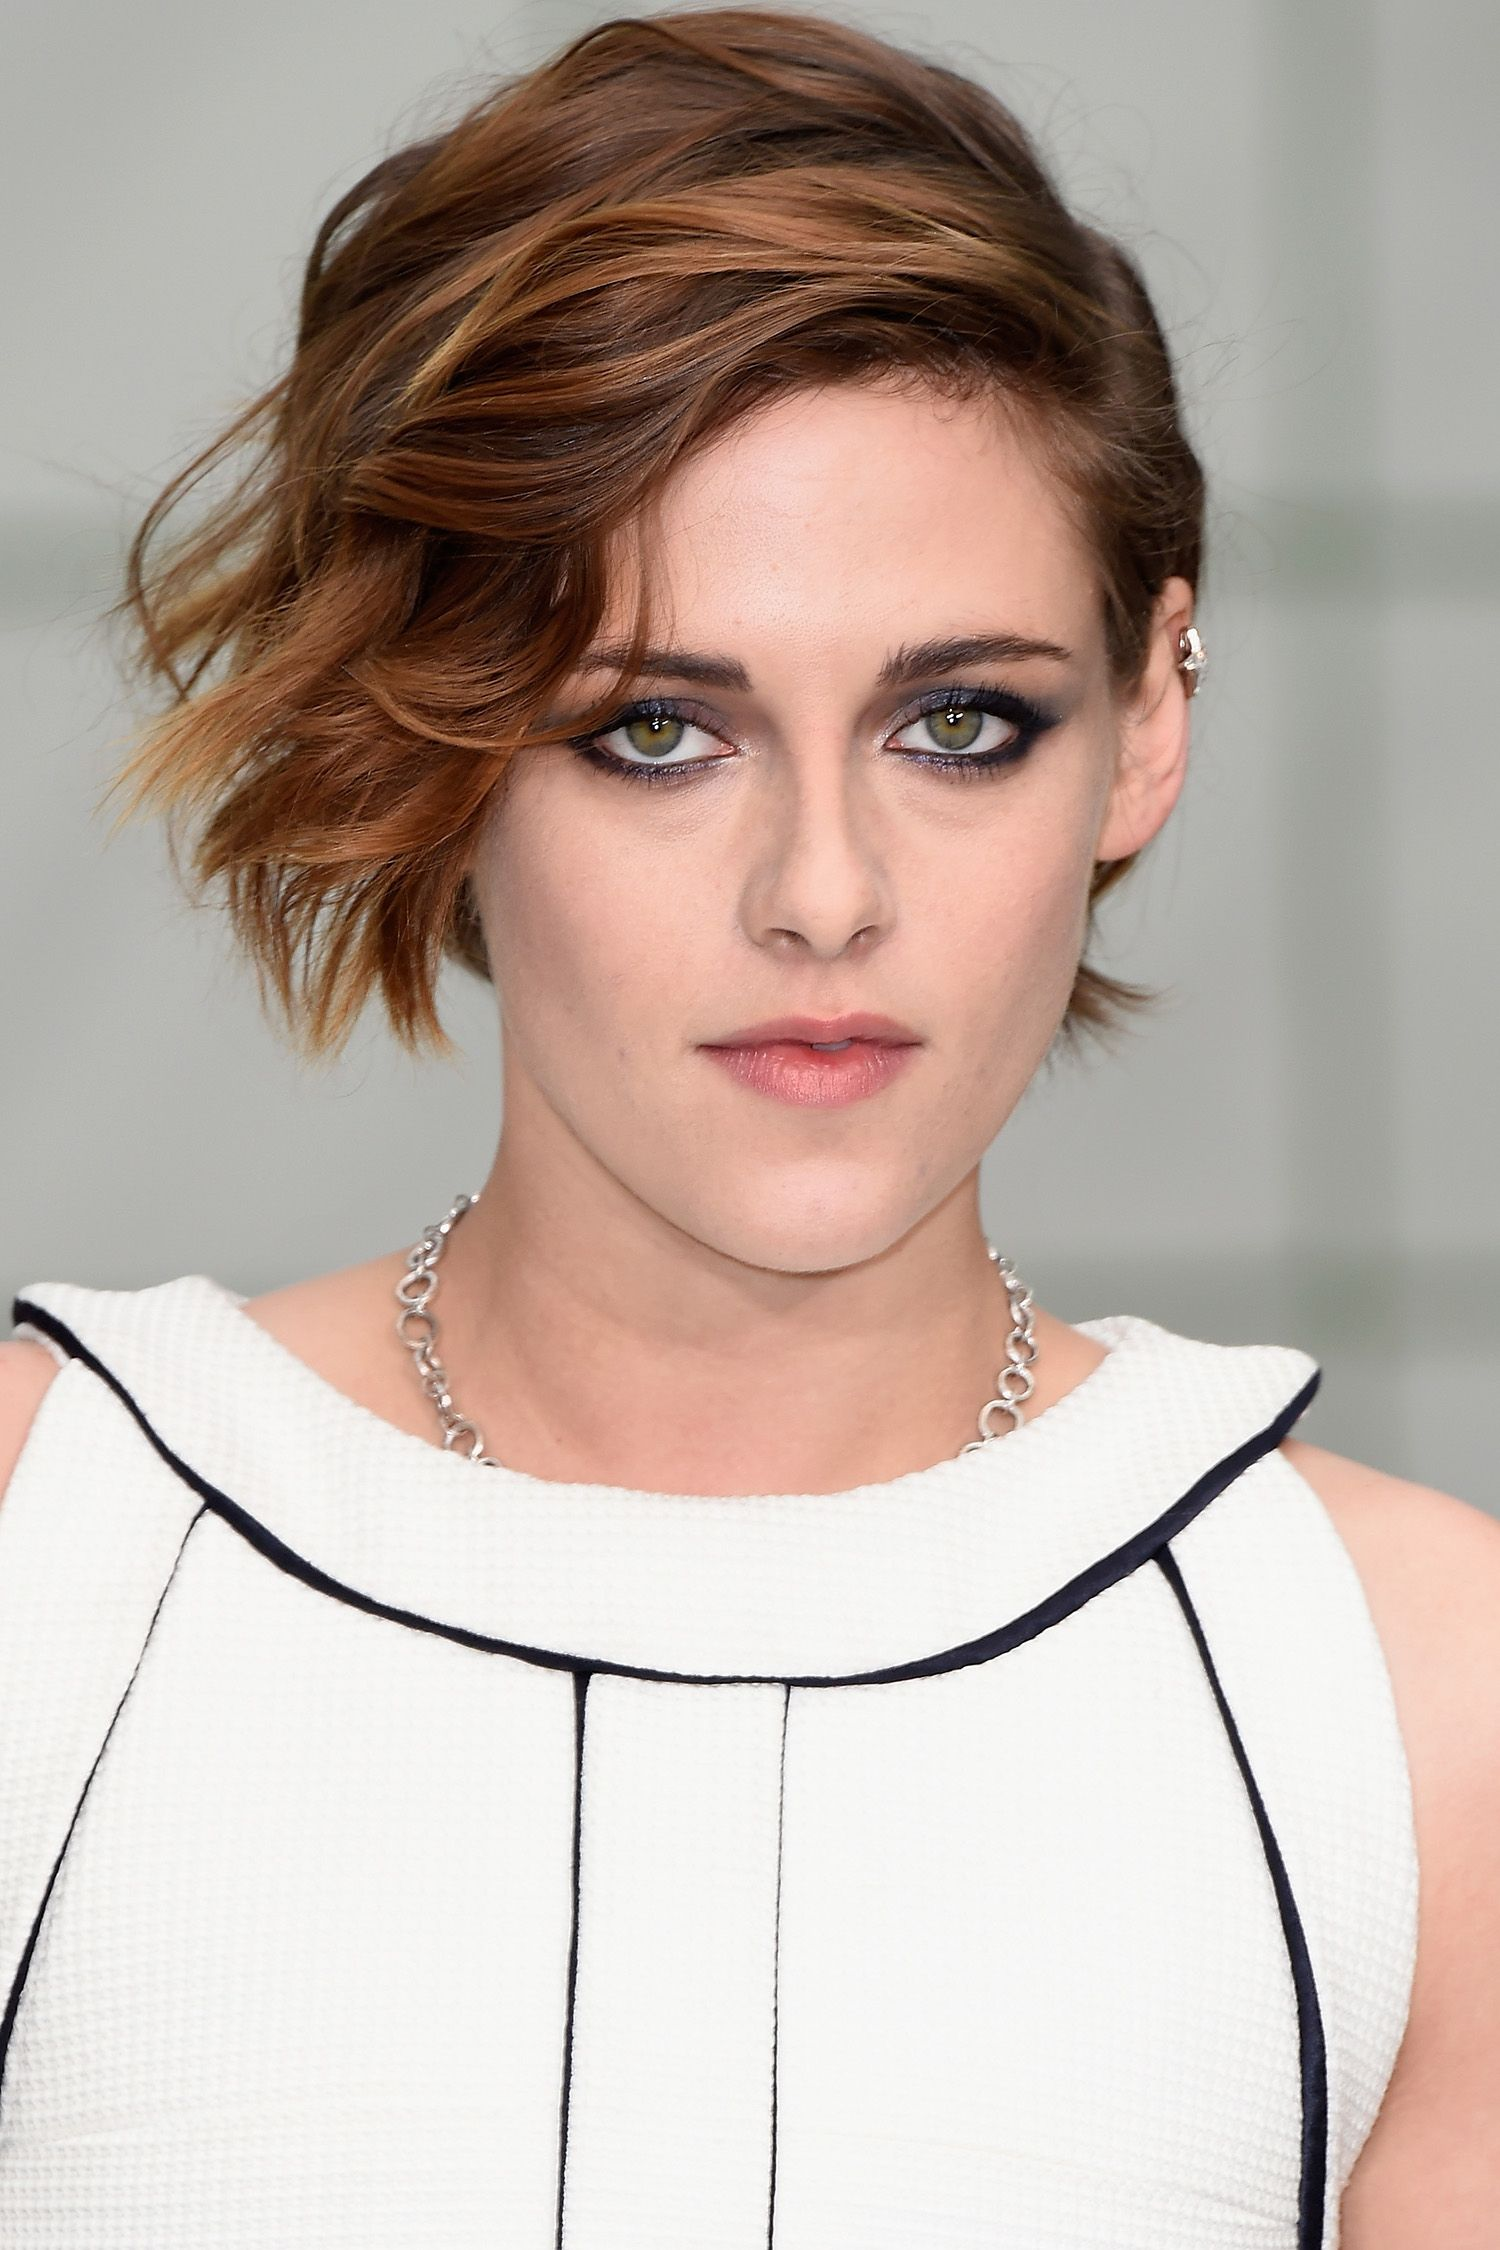 Pixie Hairstyles undercut and shaved pixie haircut 42 Pixie Cuts We Love In 2015 Pixie Hairstyles From Classic To Edgy